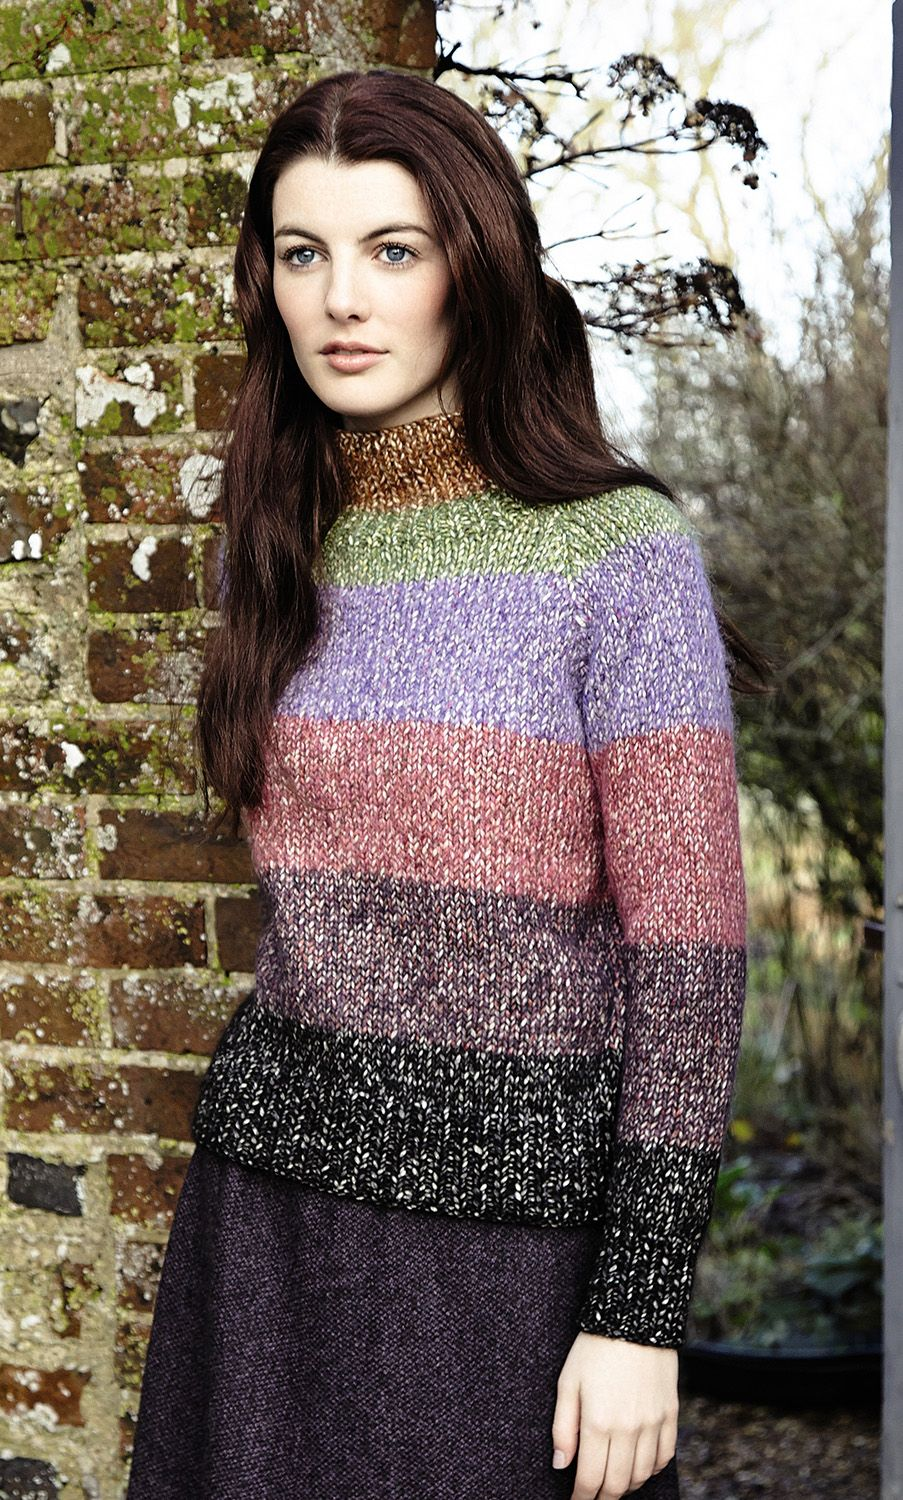 Aisling by Marie Wallin: Rowan Fazed Tweed Collection (available July 15, 2014)